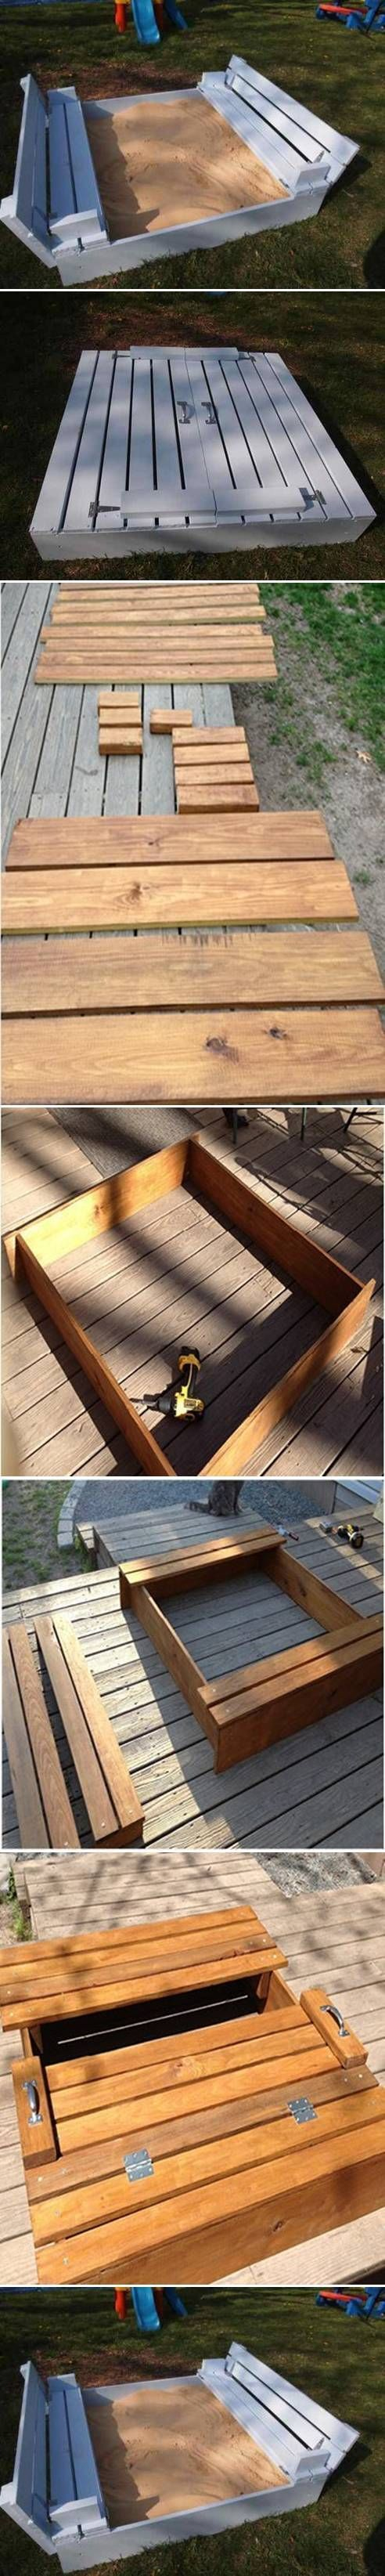 DIY Sandbox...that is freaking awesome!!